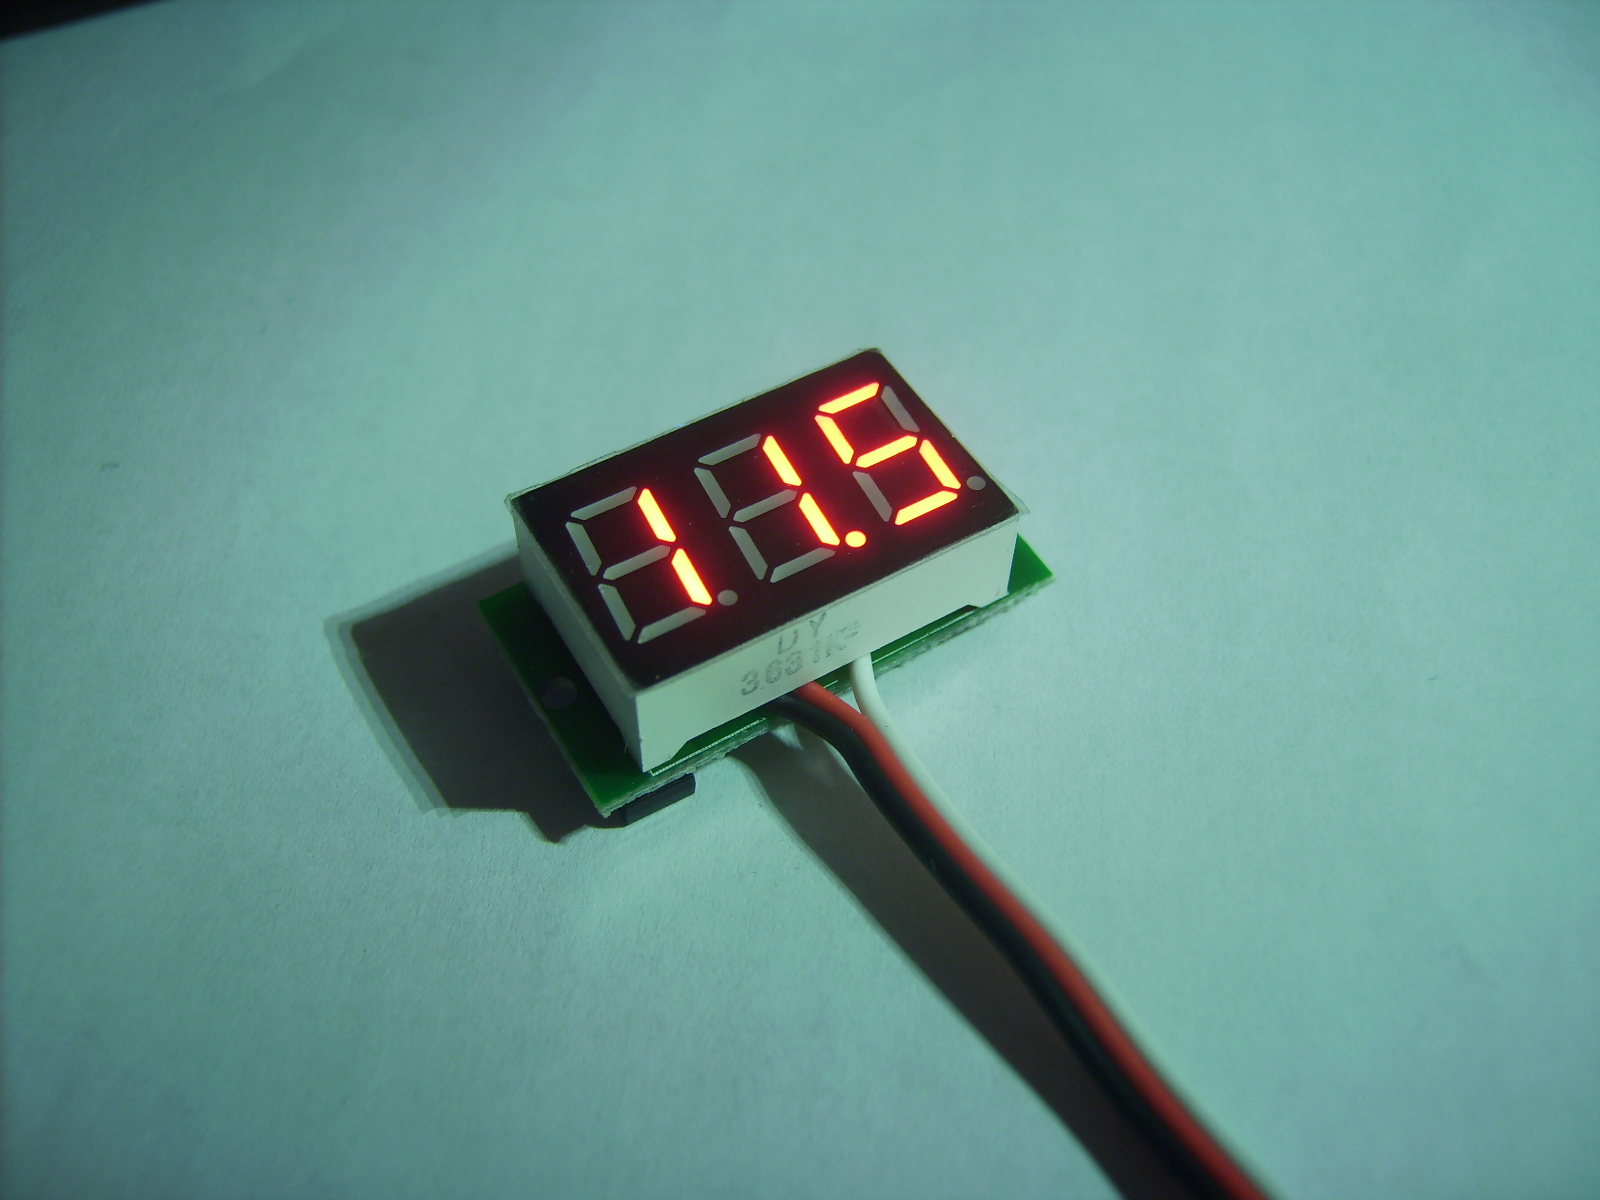 Ebay Digital Dc Voltmeter Teardown Projects Of Jaanus Kalde What Resistor Should I Use In An Led Circuit Cheap Action